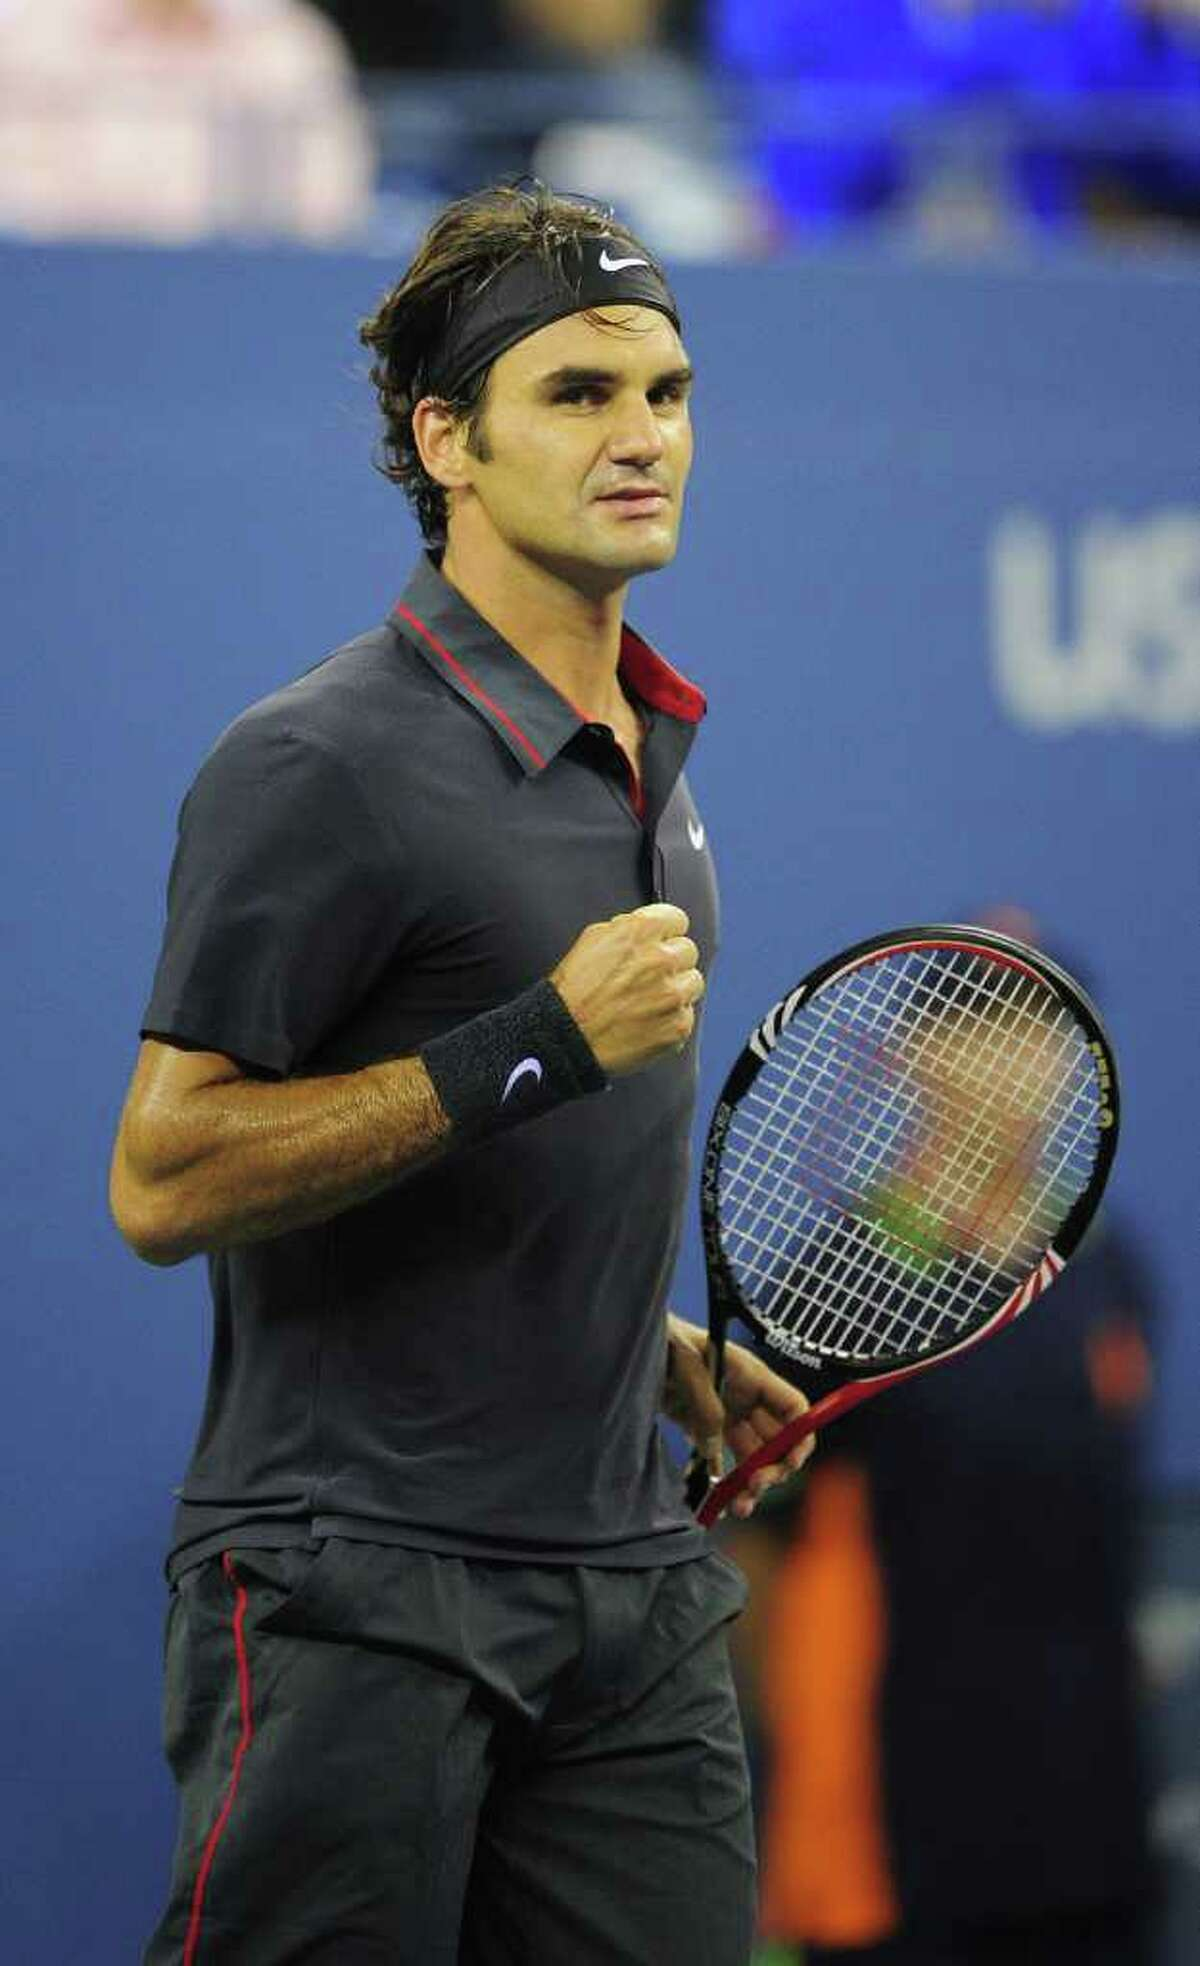 Roger Federer looked classic as always in a monochromatic ensemble.